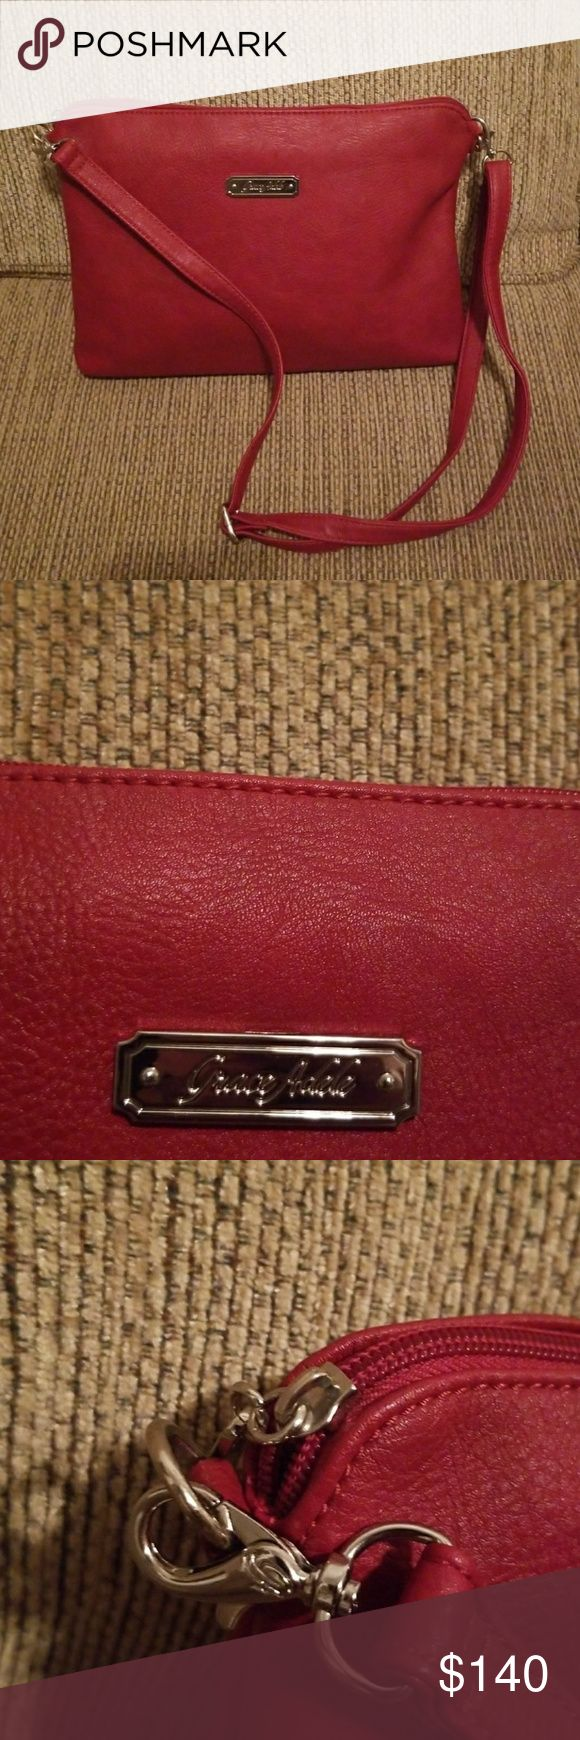 Grace Adele crossbody bag Dark red GA crossbody adjustable shoulder strap. Excellent condition and its as close to new as you can get, without the tags👍👌. SORRY🚫No offers on this bag.🚫 Grace Adele Bags Crossbody Bags